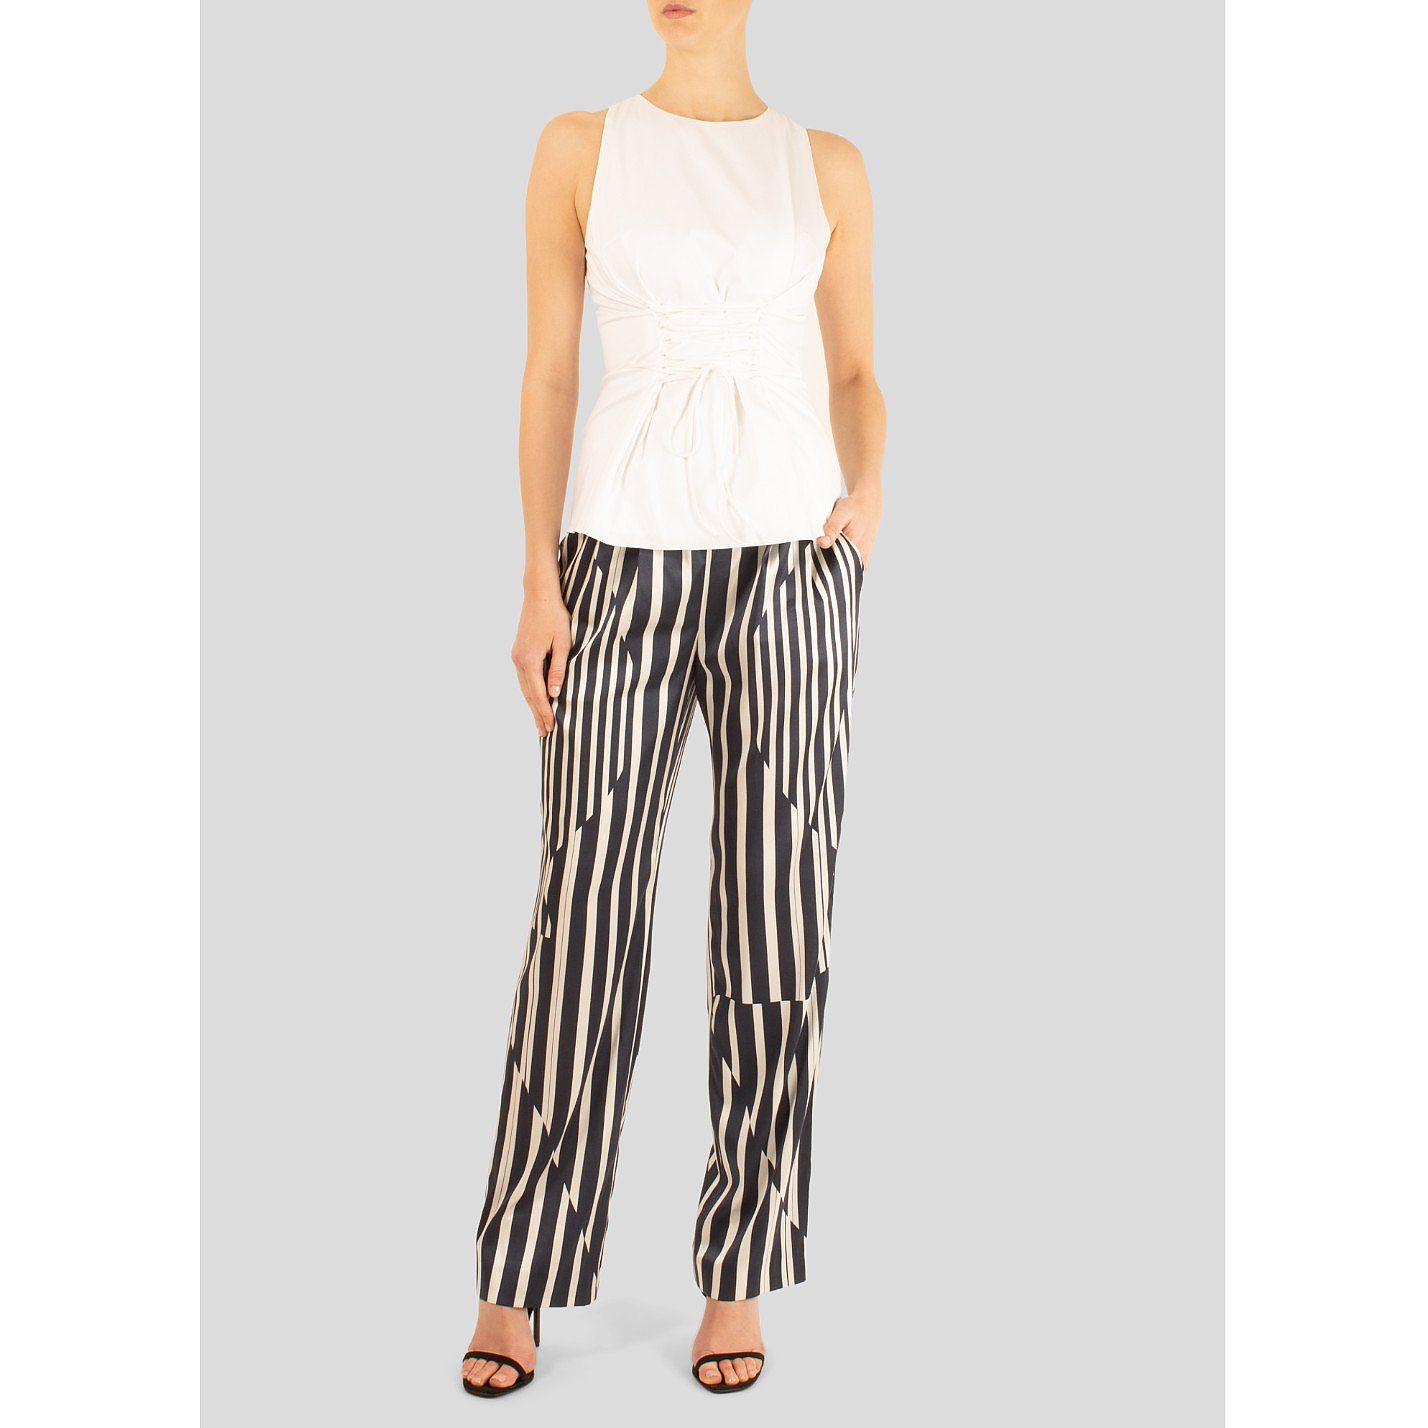 Thakoon Addition Asymmetrical Paneled Striped Trousers